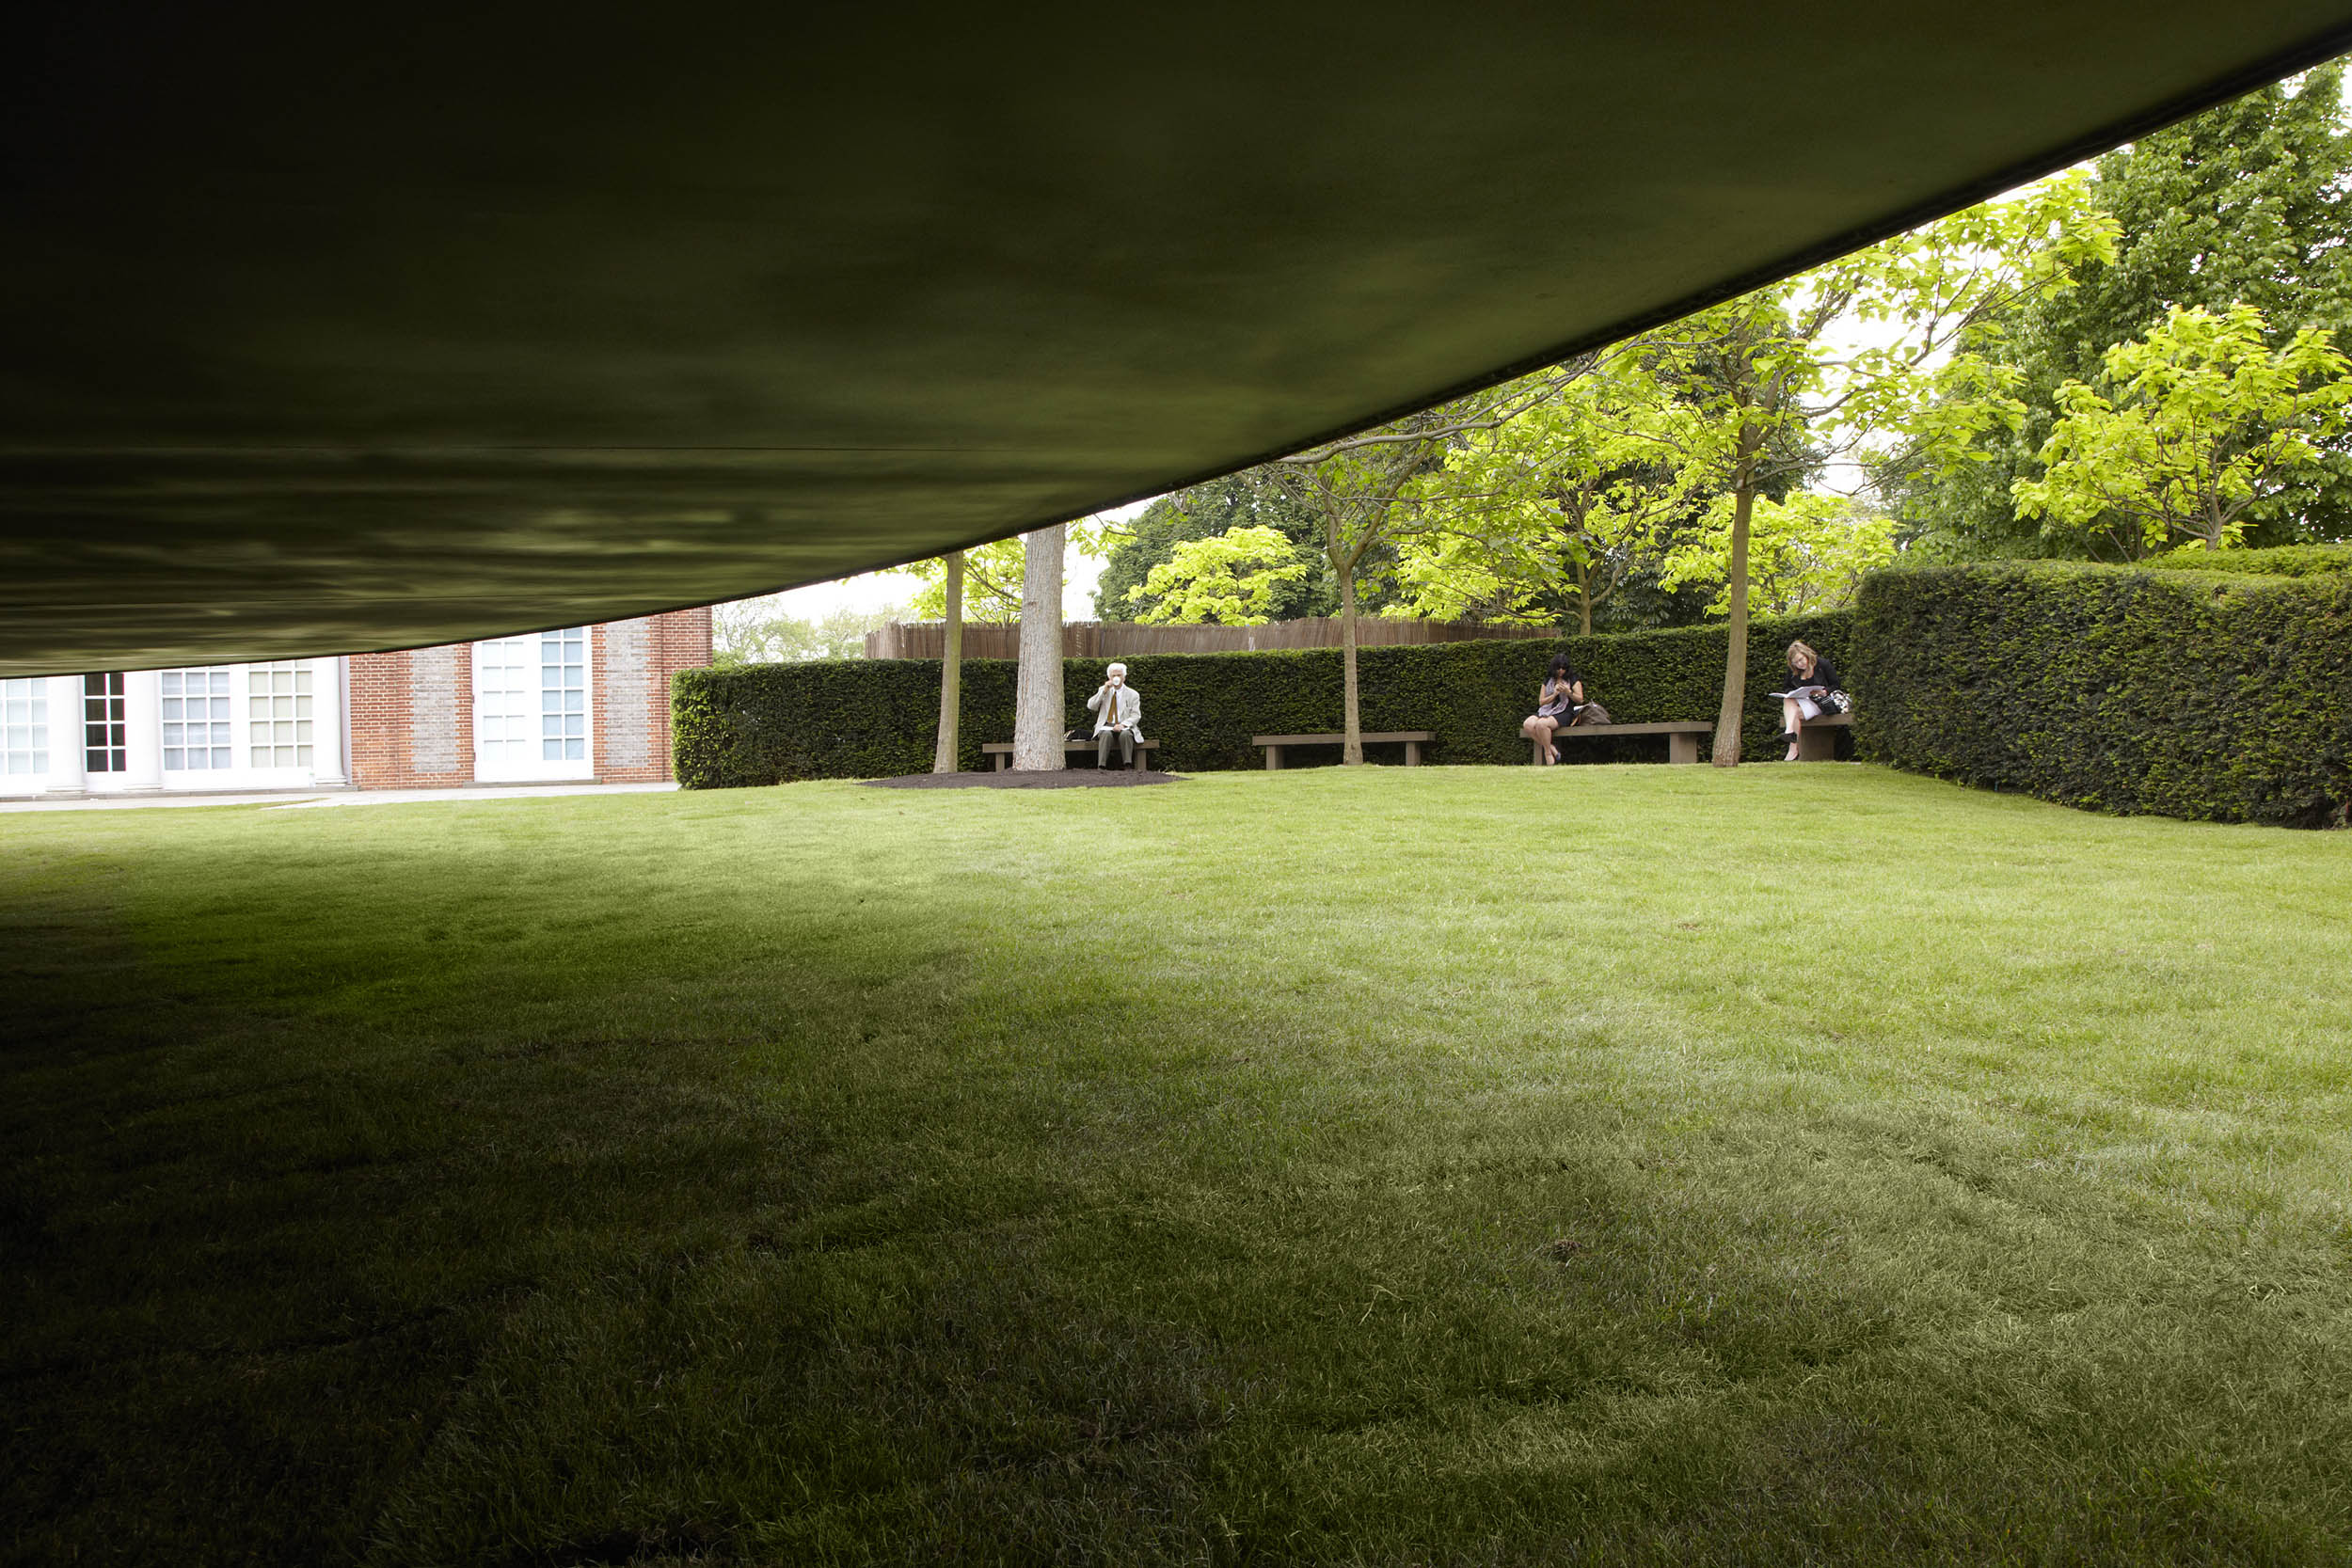 Serpentine Gallery Pavilion 2012. Designed by Herzog & de Meuron and Ai Weiwei. © Herzog & de Meuron and Ai Weiwei. Photo: © 2012 John Offenbach